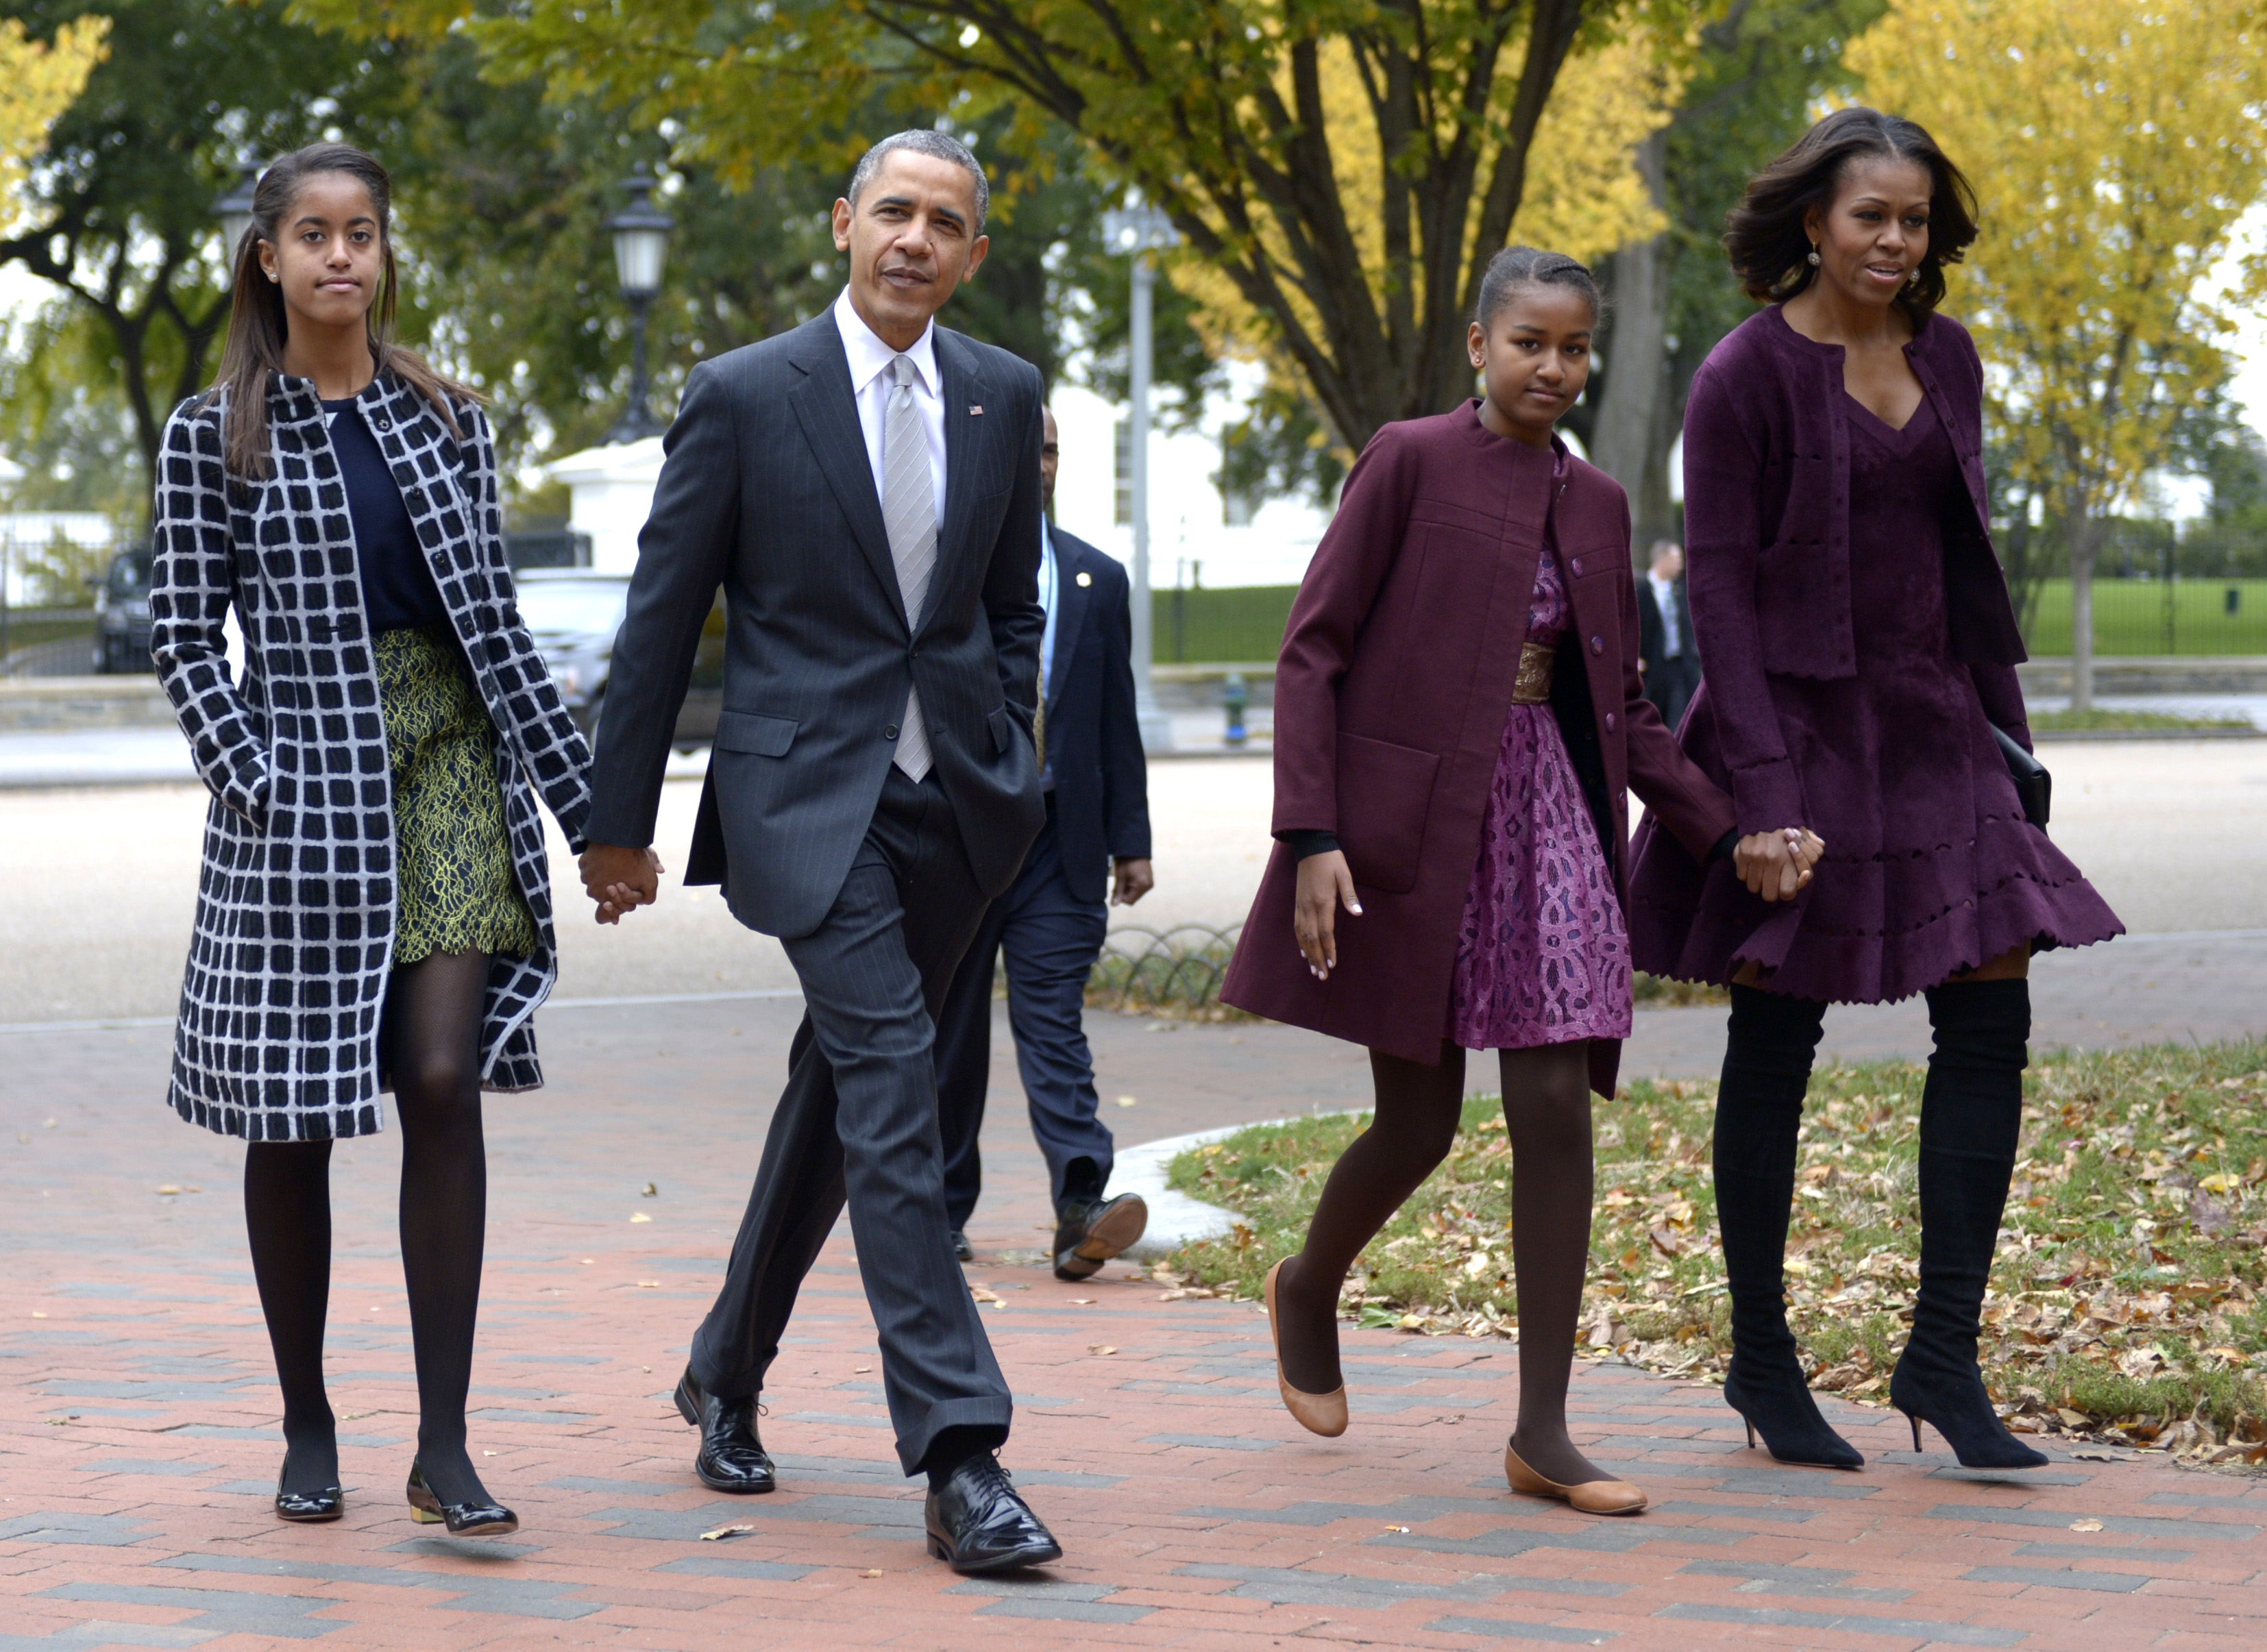 U.S. President Barack Obama walks with his wife Michelle Obama (R) and two daughters Malia Obama (L) and Sasha Obama (2R) through Lafayette Park to St John's Church to attend service October 27, 2013 in Washington, DC. Obama is scheduled to travel to Boston this week. (Getty Images)